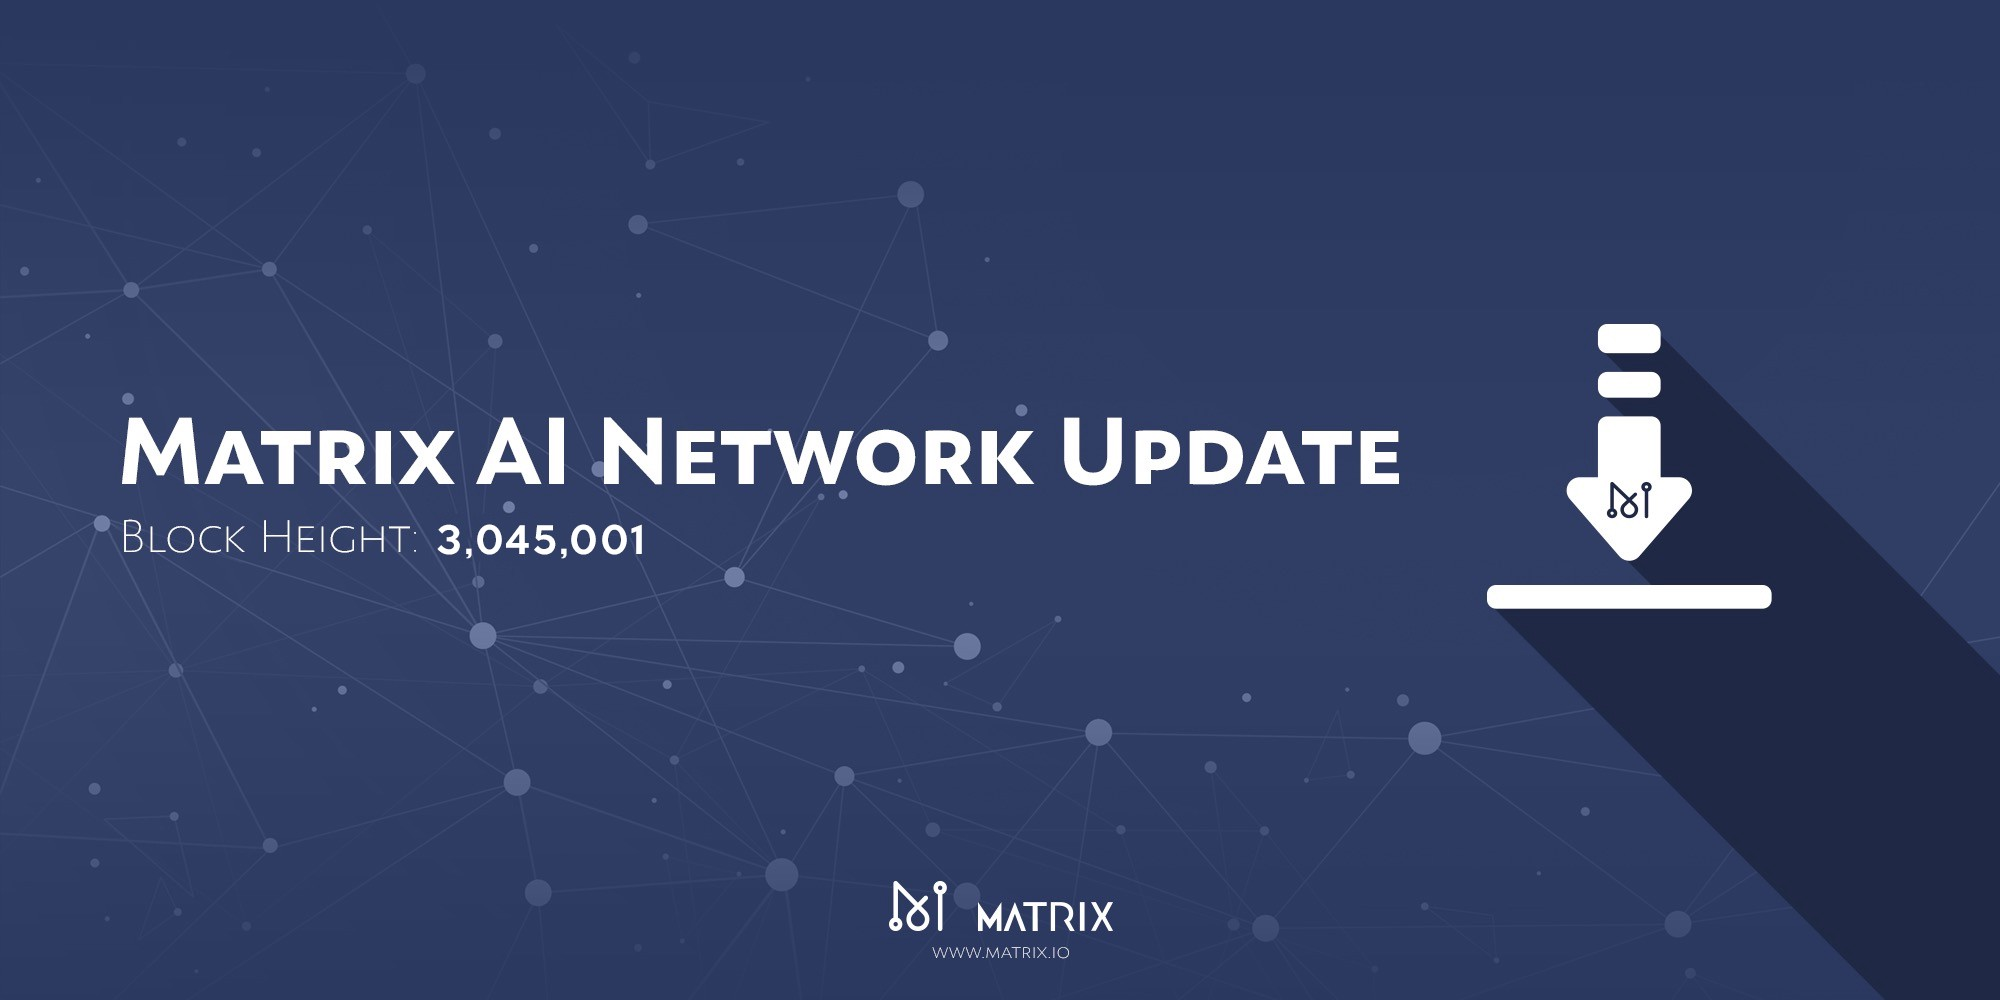 Matrix AI Network Update Notes and Instructions